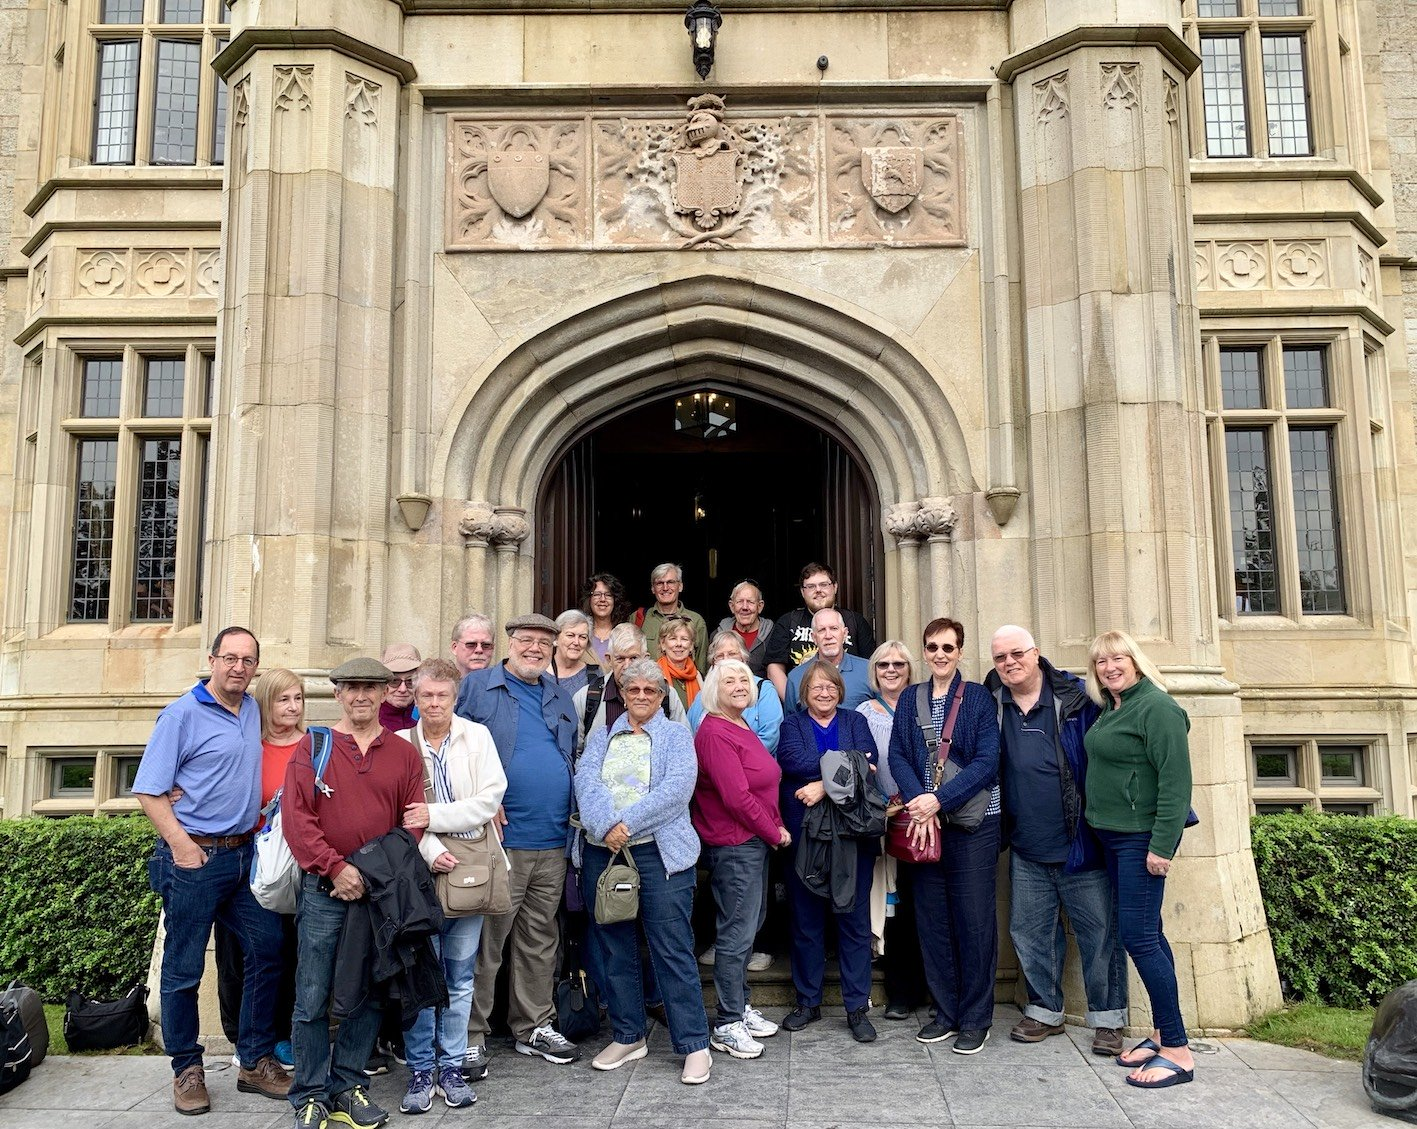 2019 September Group, Lough Eske Castle, Donegal